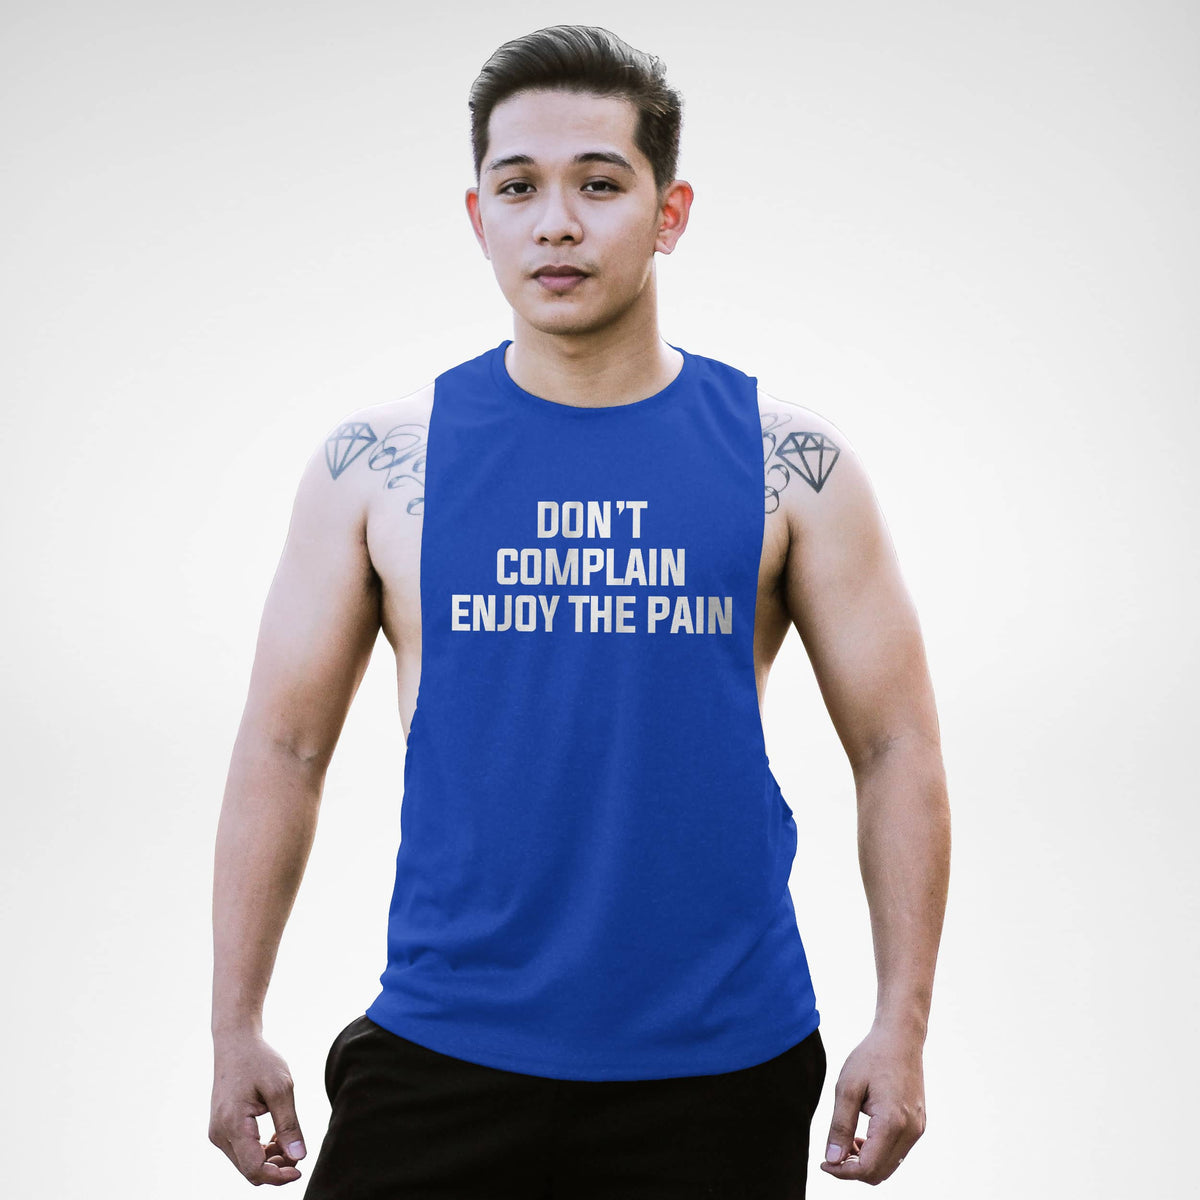 AM134 Don't Complain Enjoy The Pain Openside Tank Top